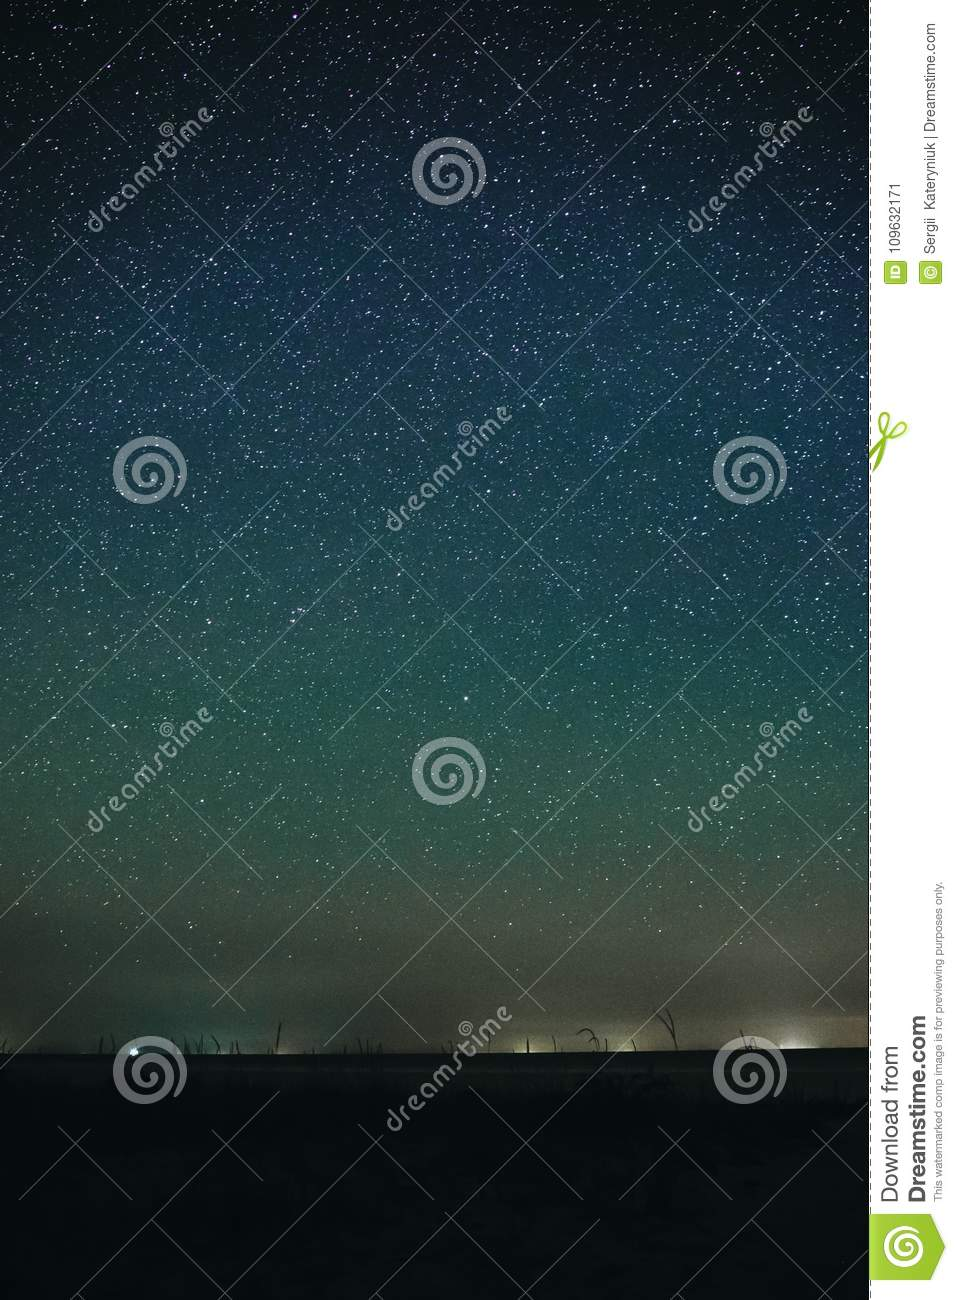 Download Vertical Landscape Of Bright Starry Night Sky With Lights Upon On It And Sandy Empty Beach With Grass And Ocean Stock Image - Image of coastal, beautiful: 109632171